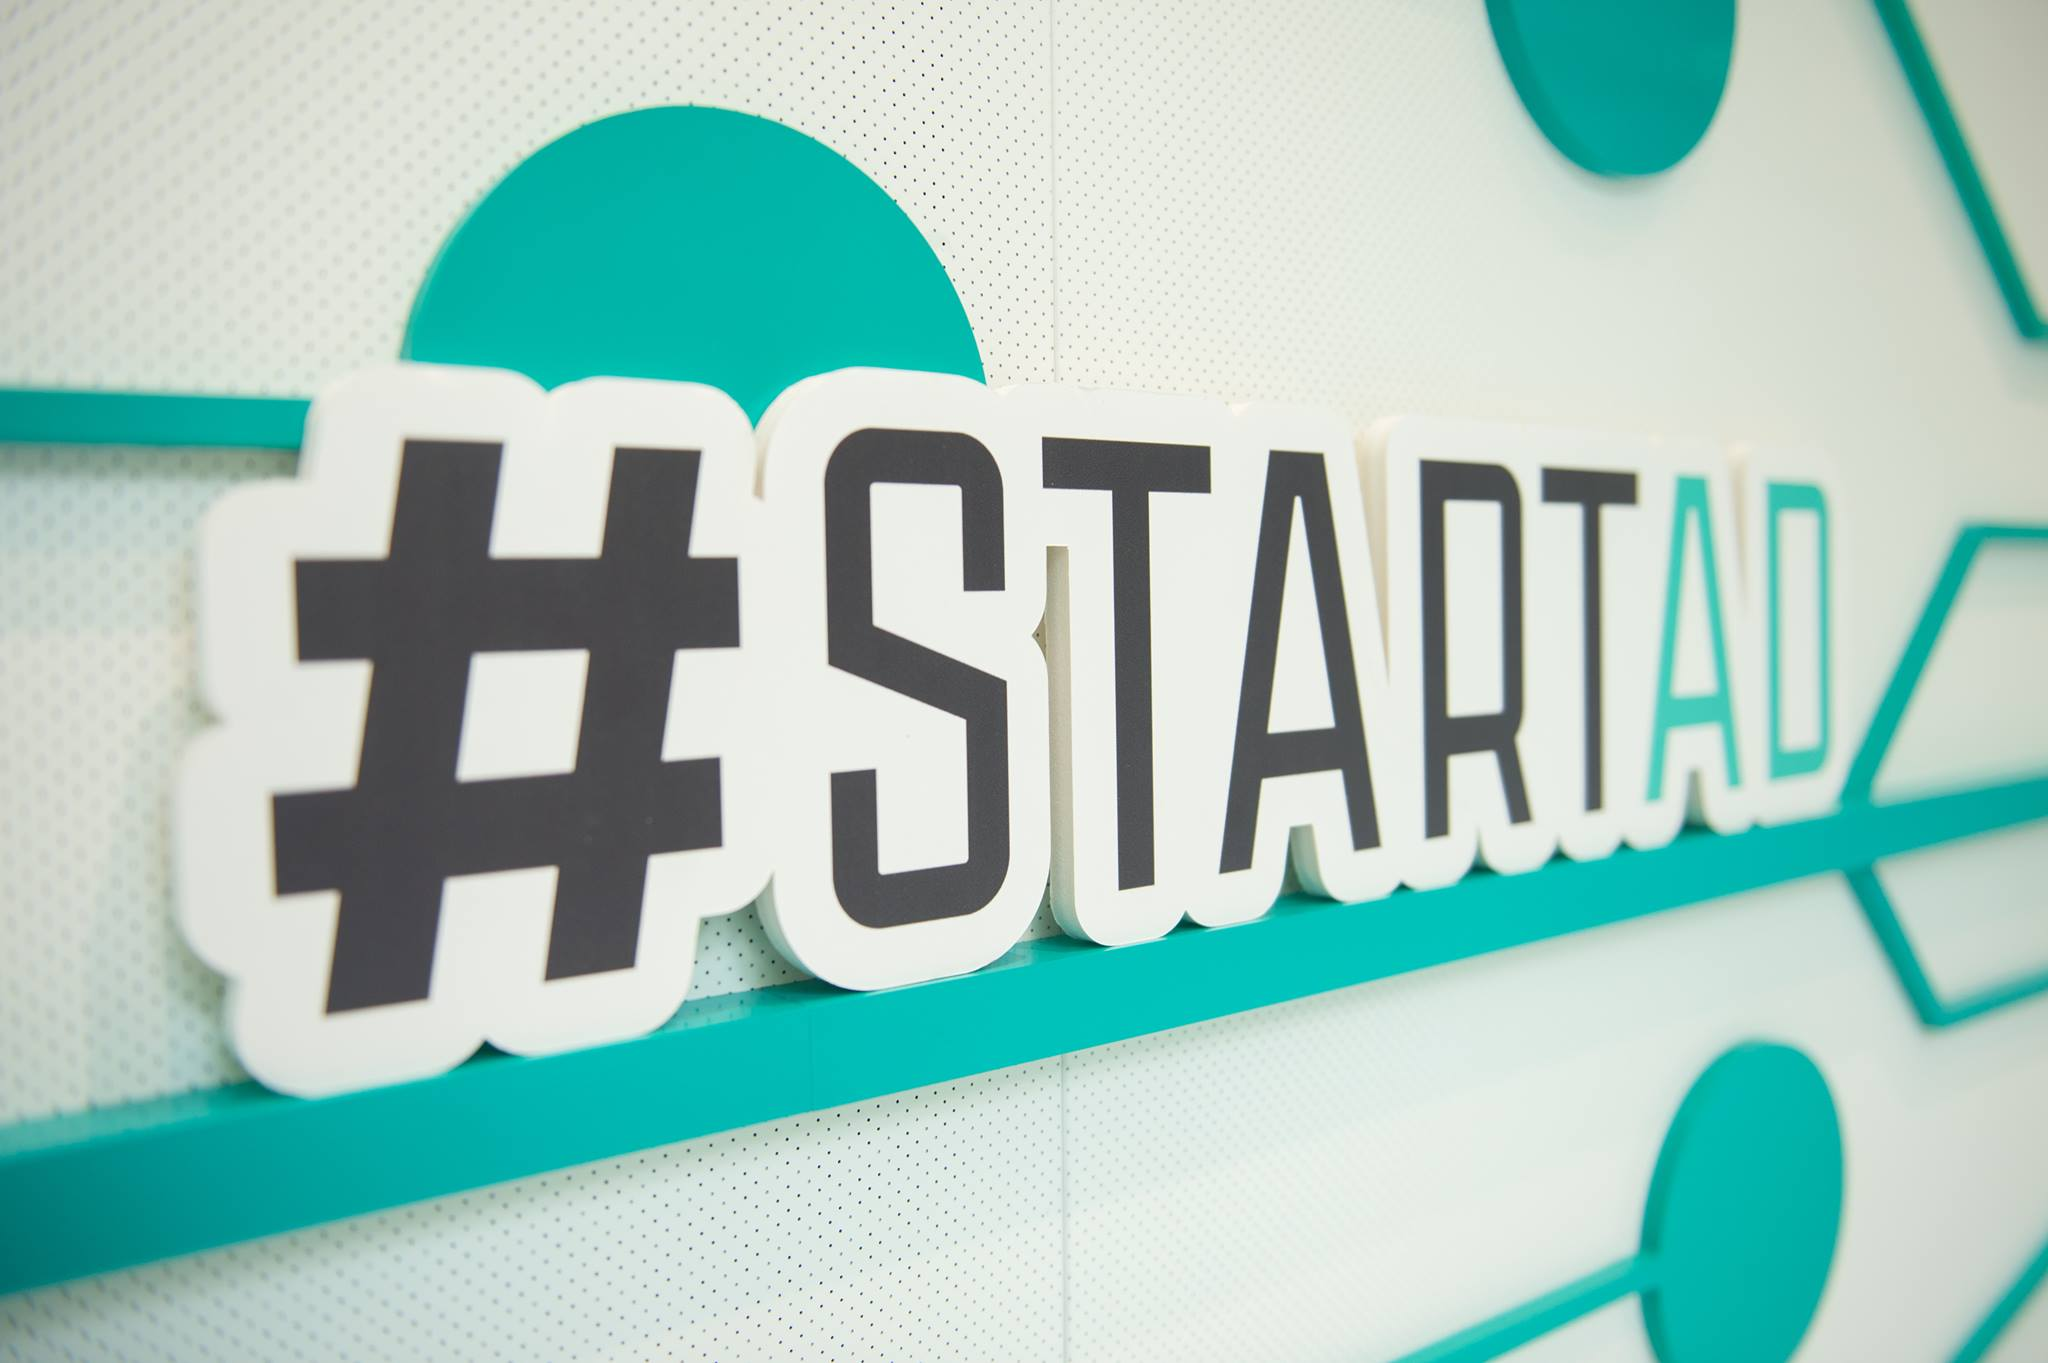 Seed-stage fintechs: Apply for startAD's Corporate Sprint Accelerator today!